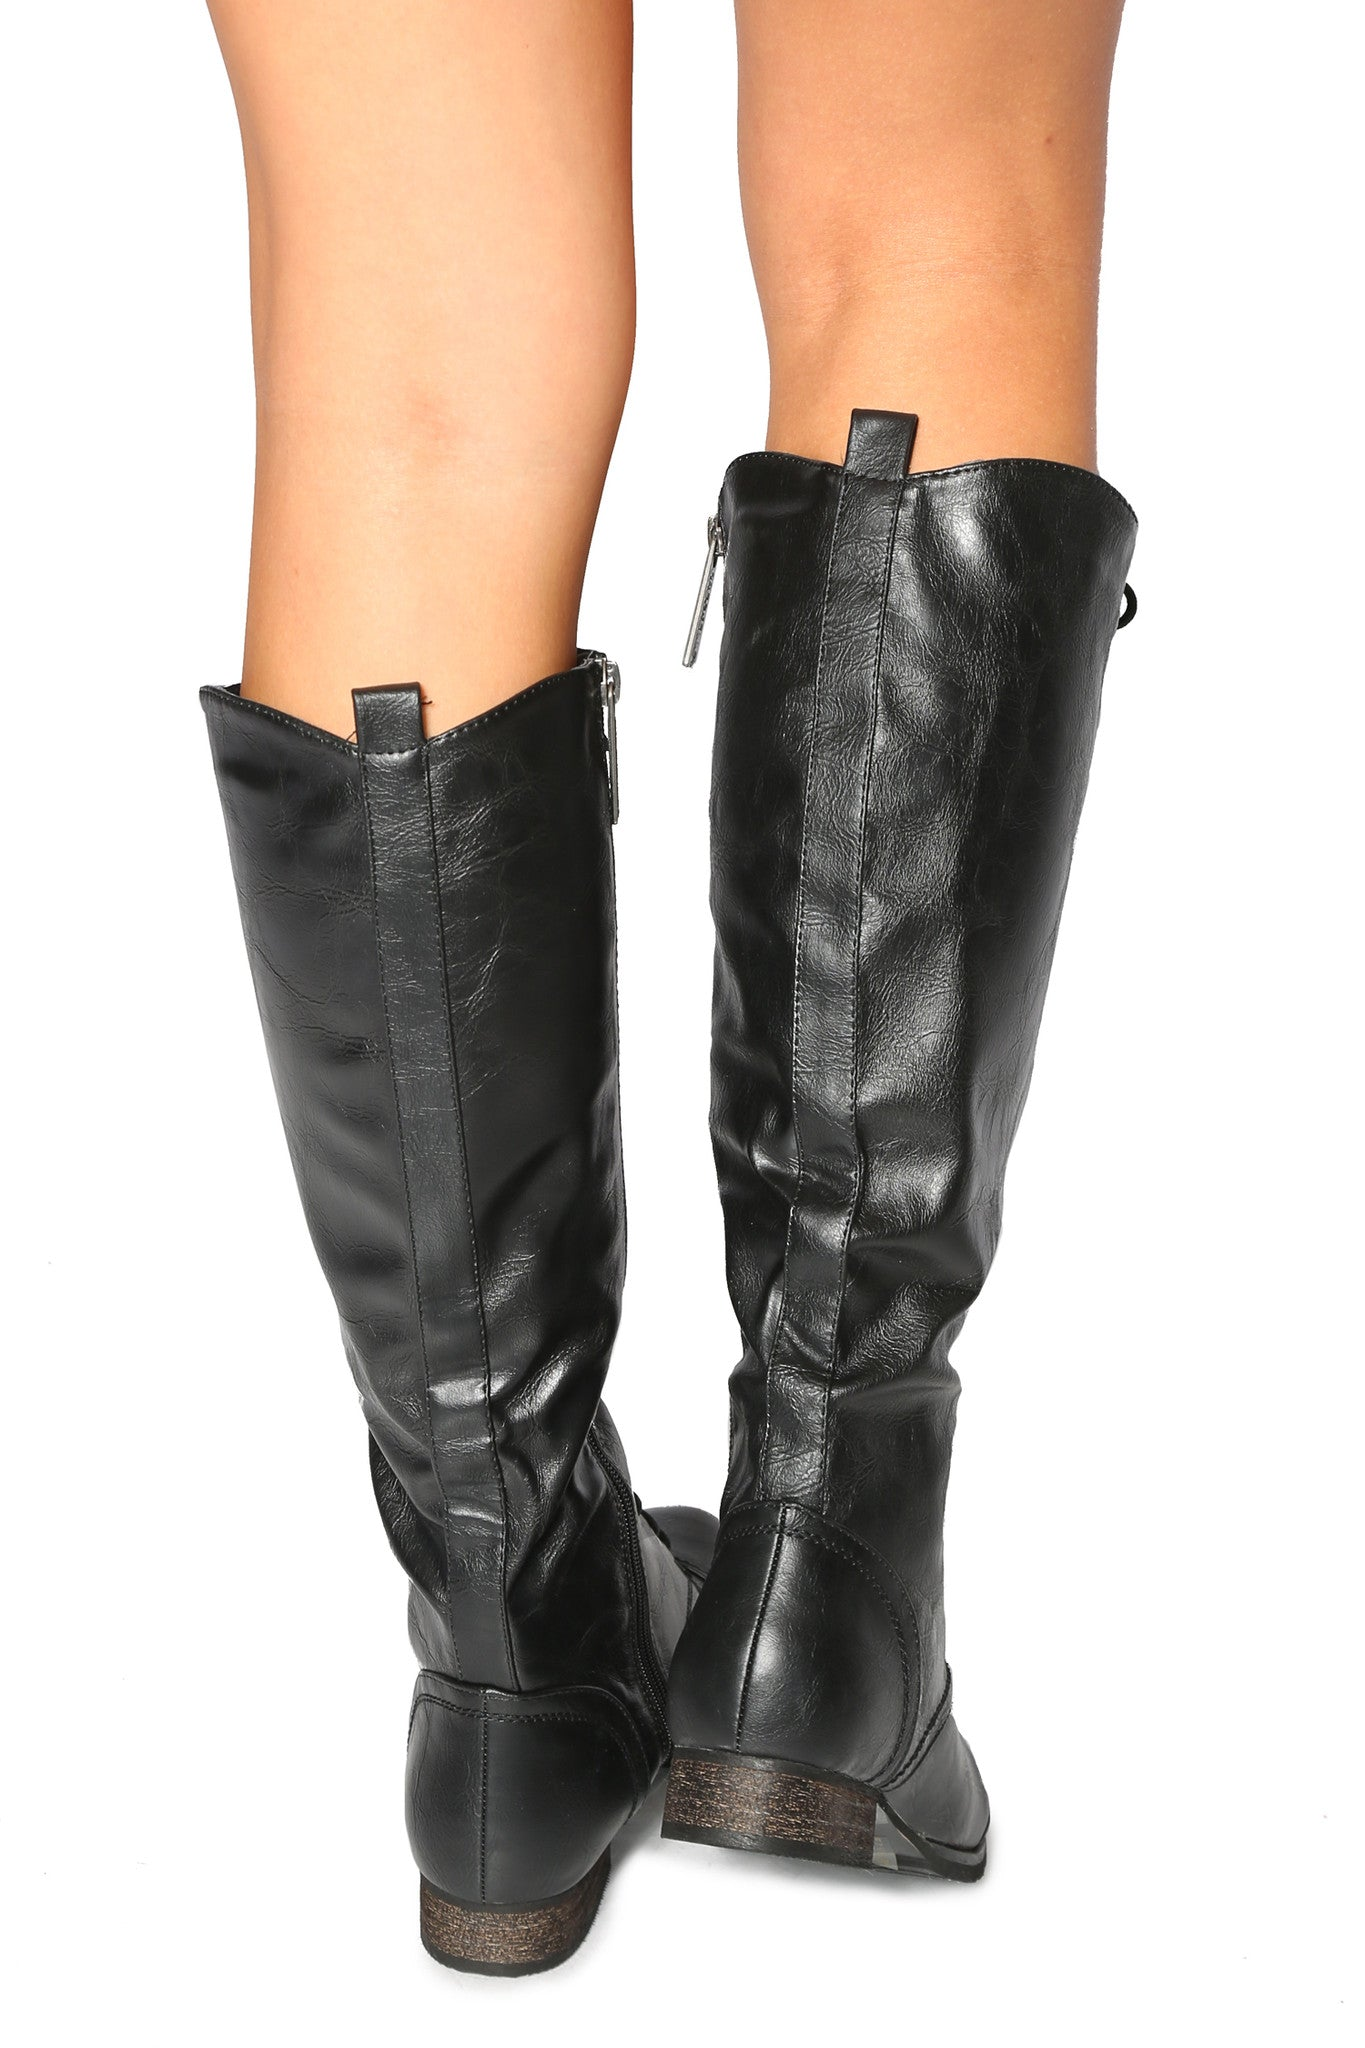 OUTLAW BOOTS - Glam Envy - 3